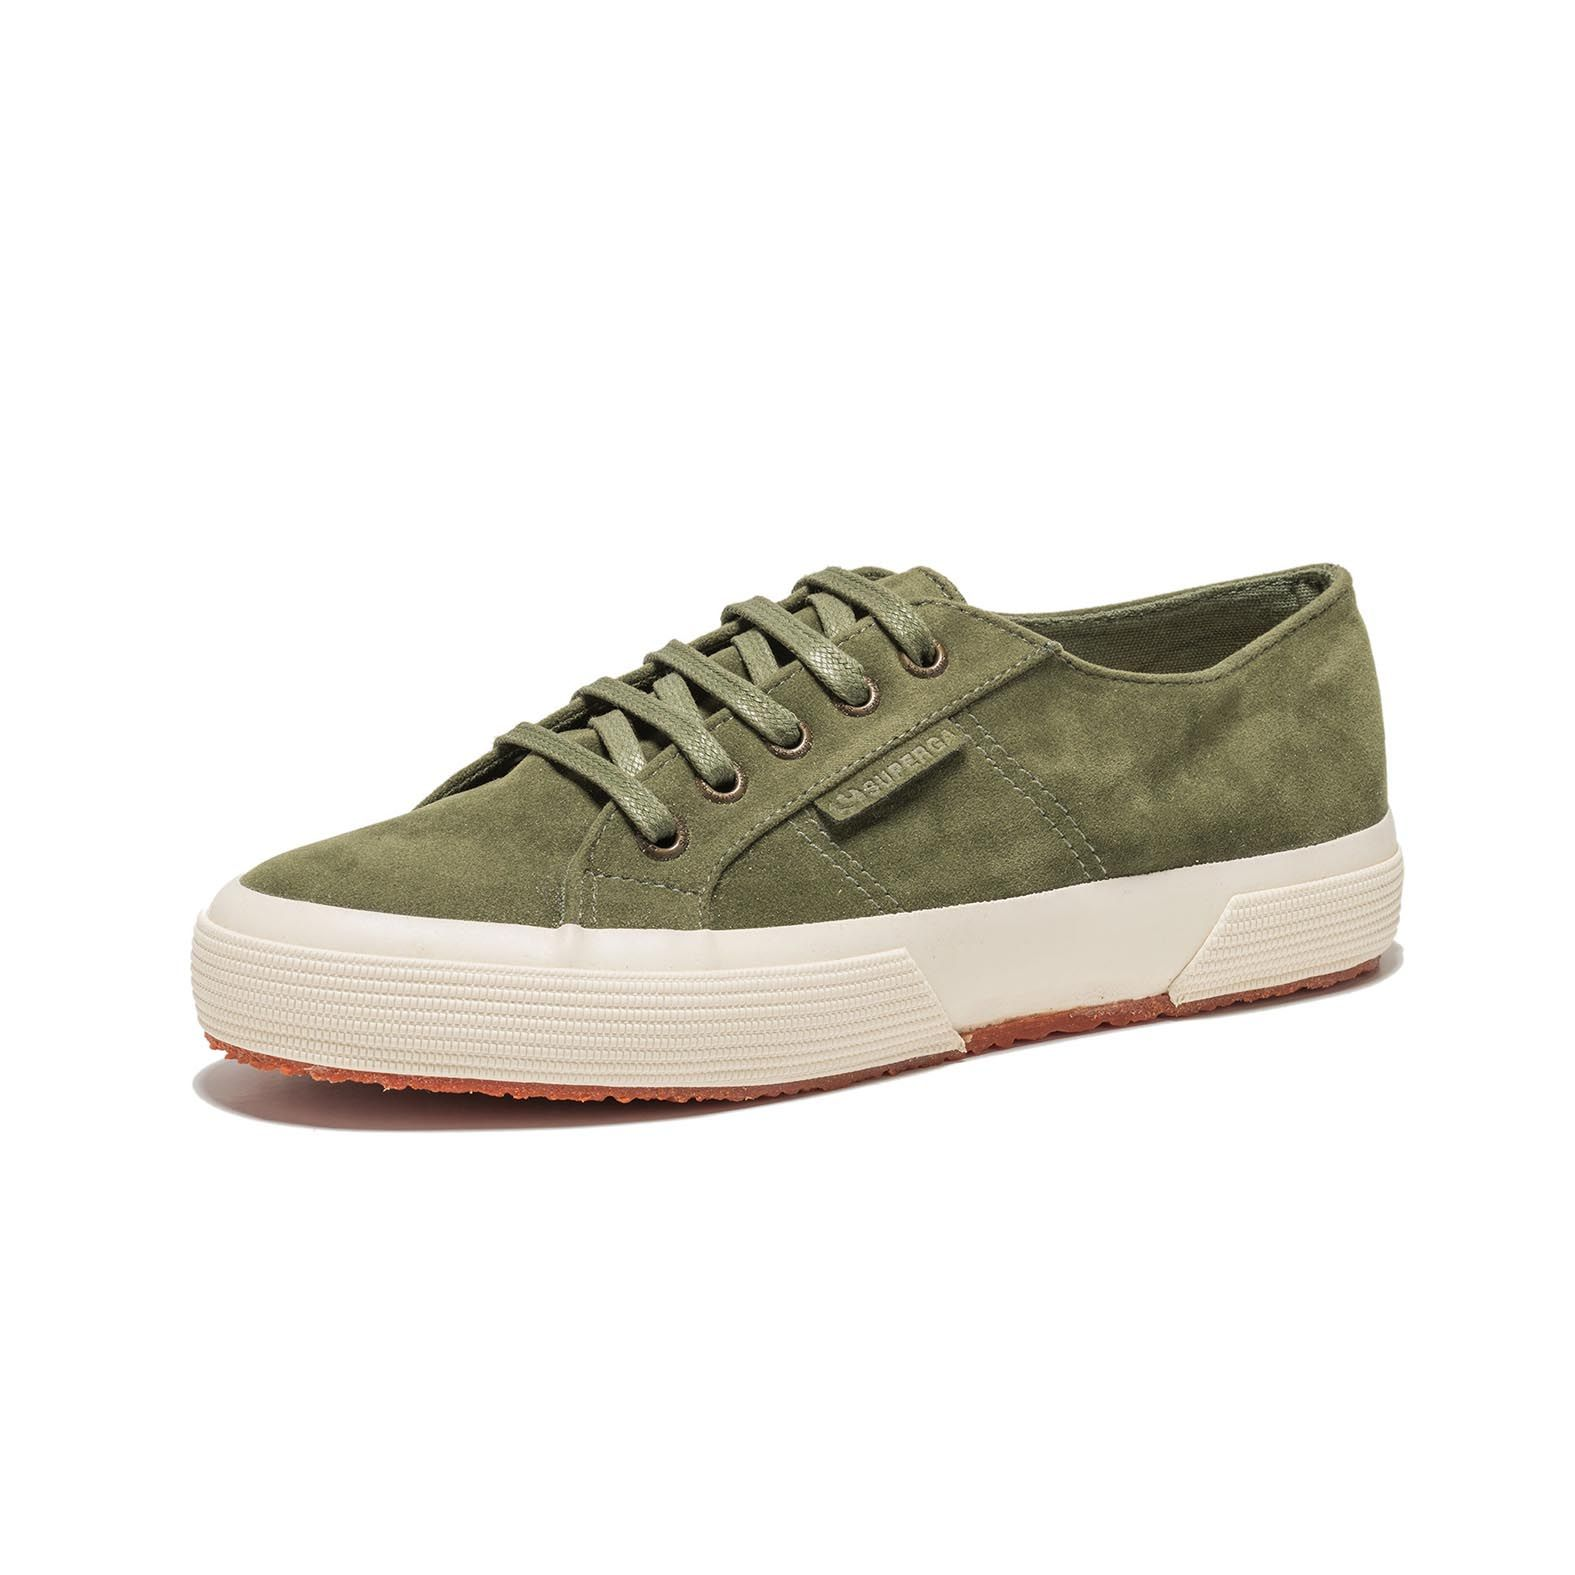 2750 SUMMER SUEDE MILITARY GREEN